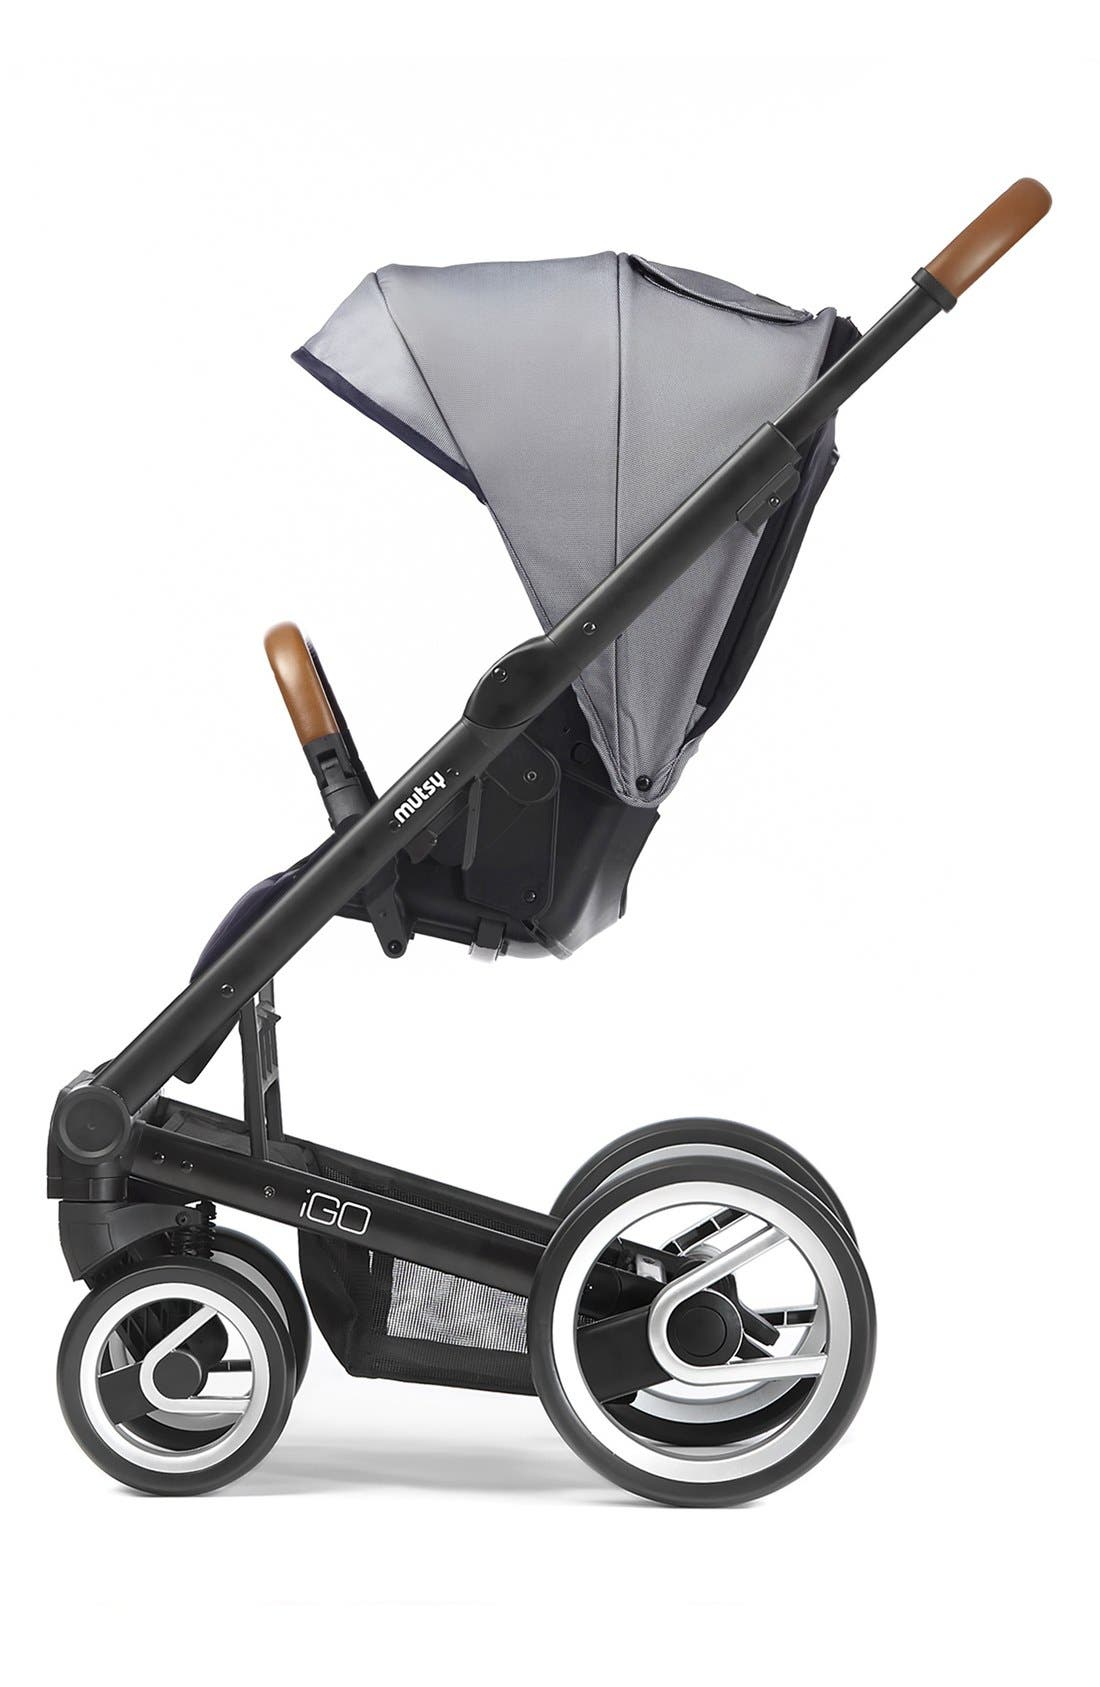 Alternate Image 1 Selected - Mutsy 'Igo - Urban Nomad' Stroller